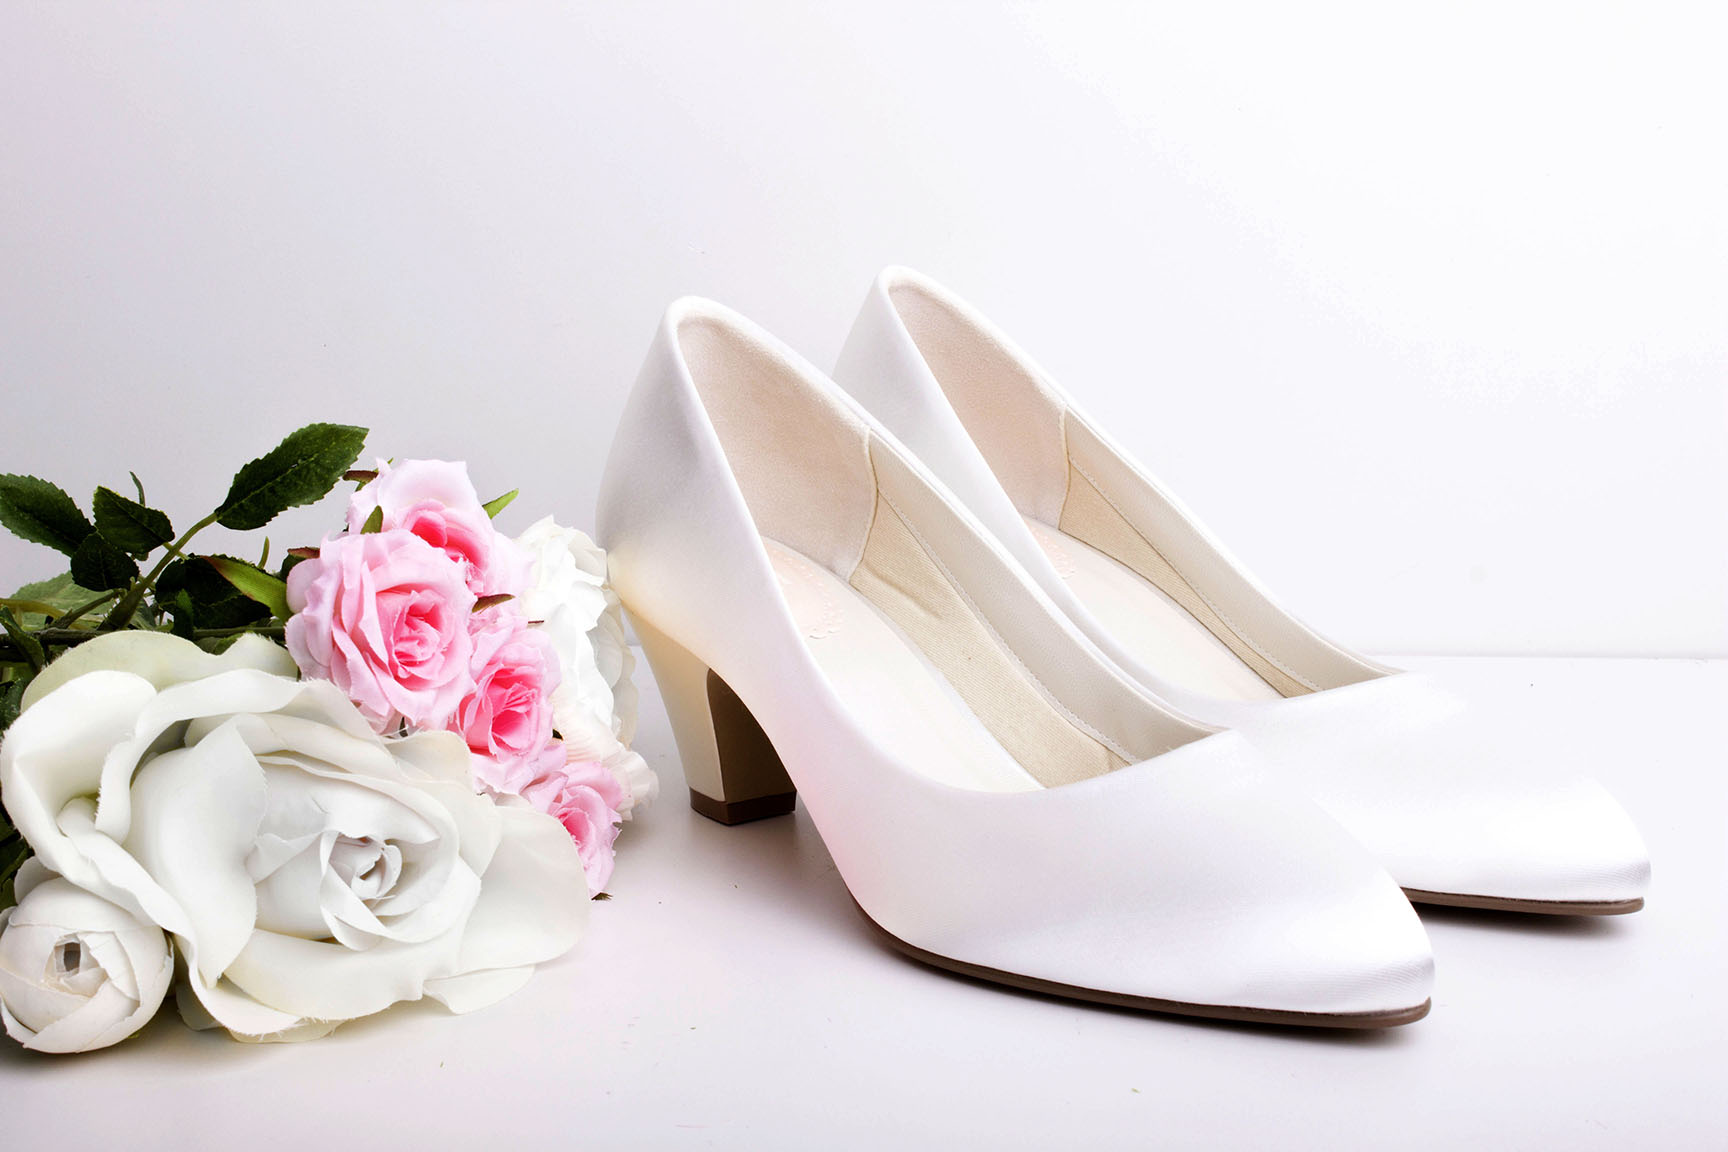 Wedding shoes, shoes, wedding accessories, pink paradox, weddings, wedding planner, top tips, wedding tips, wedding advice, shoe shopping, white shoes,